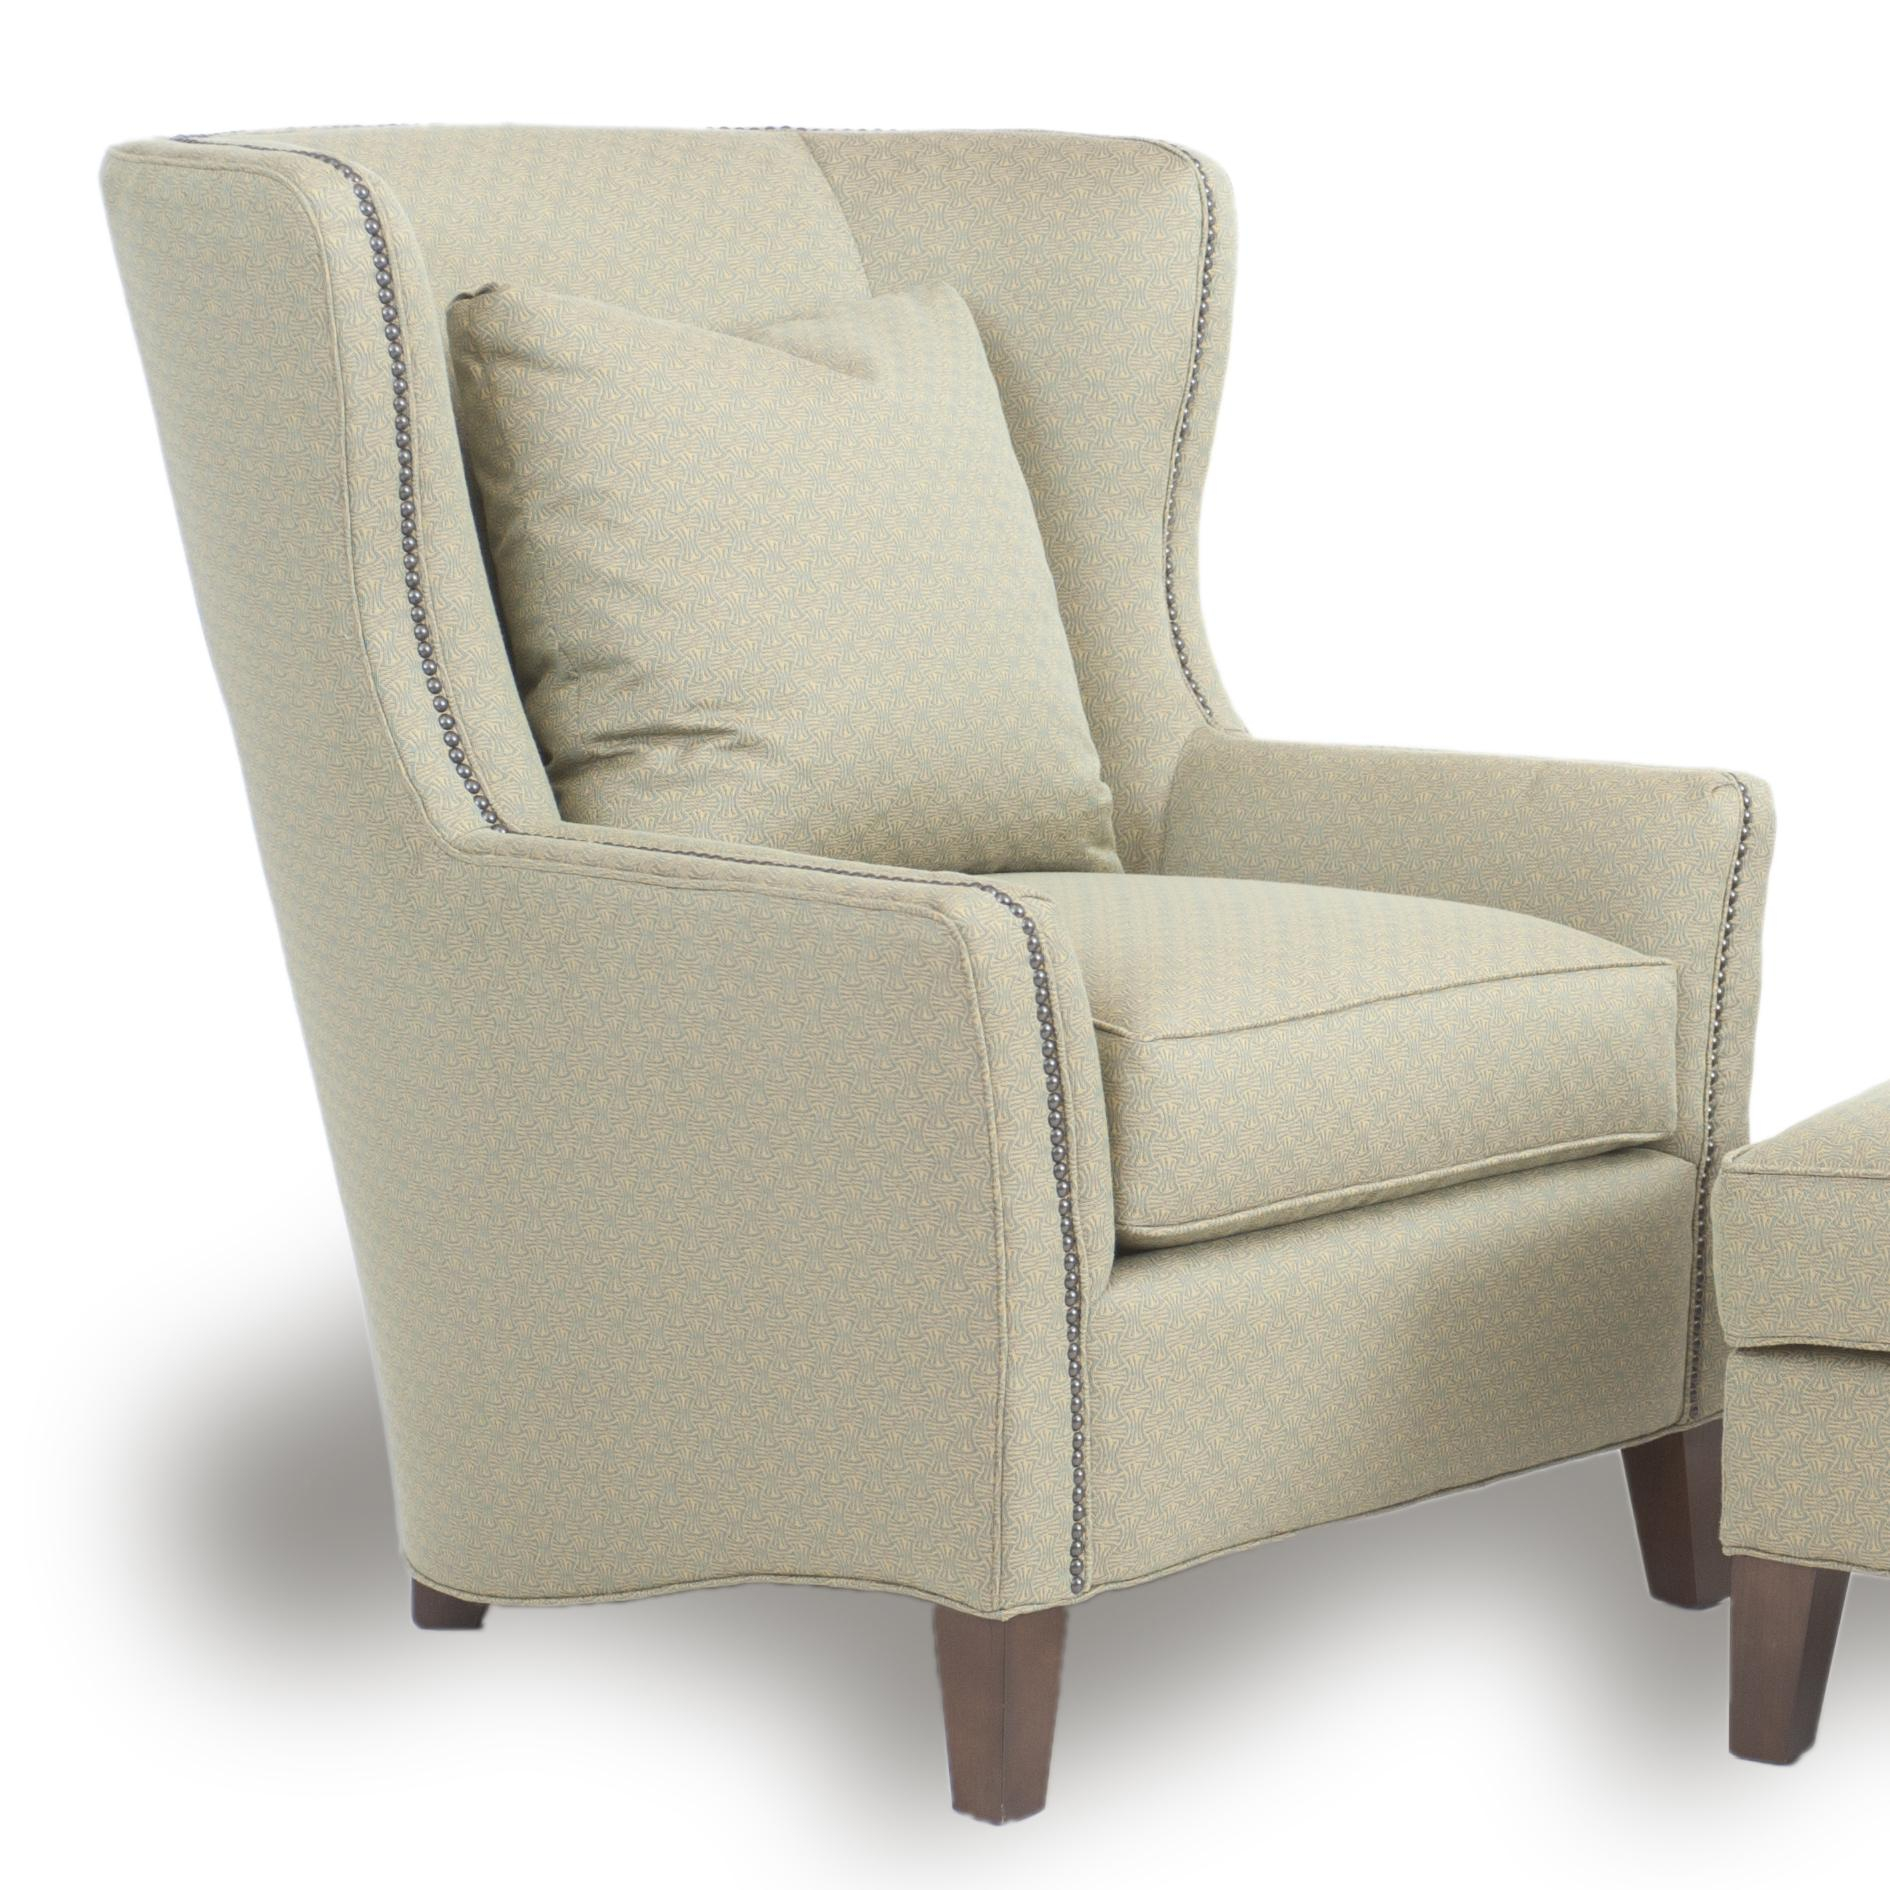 Accent Chair Best Upholstery Wingback Design And Comfy Queen Anne